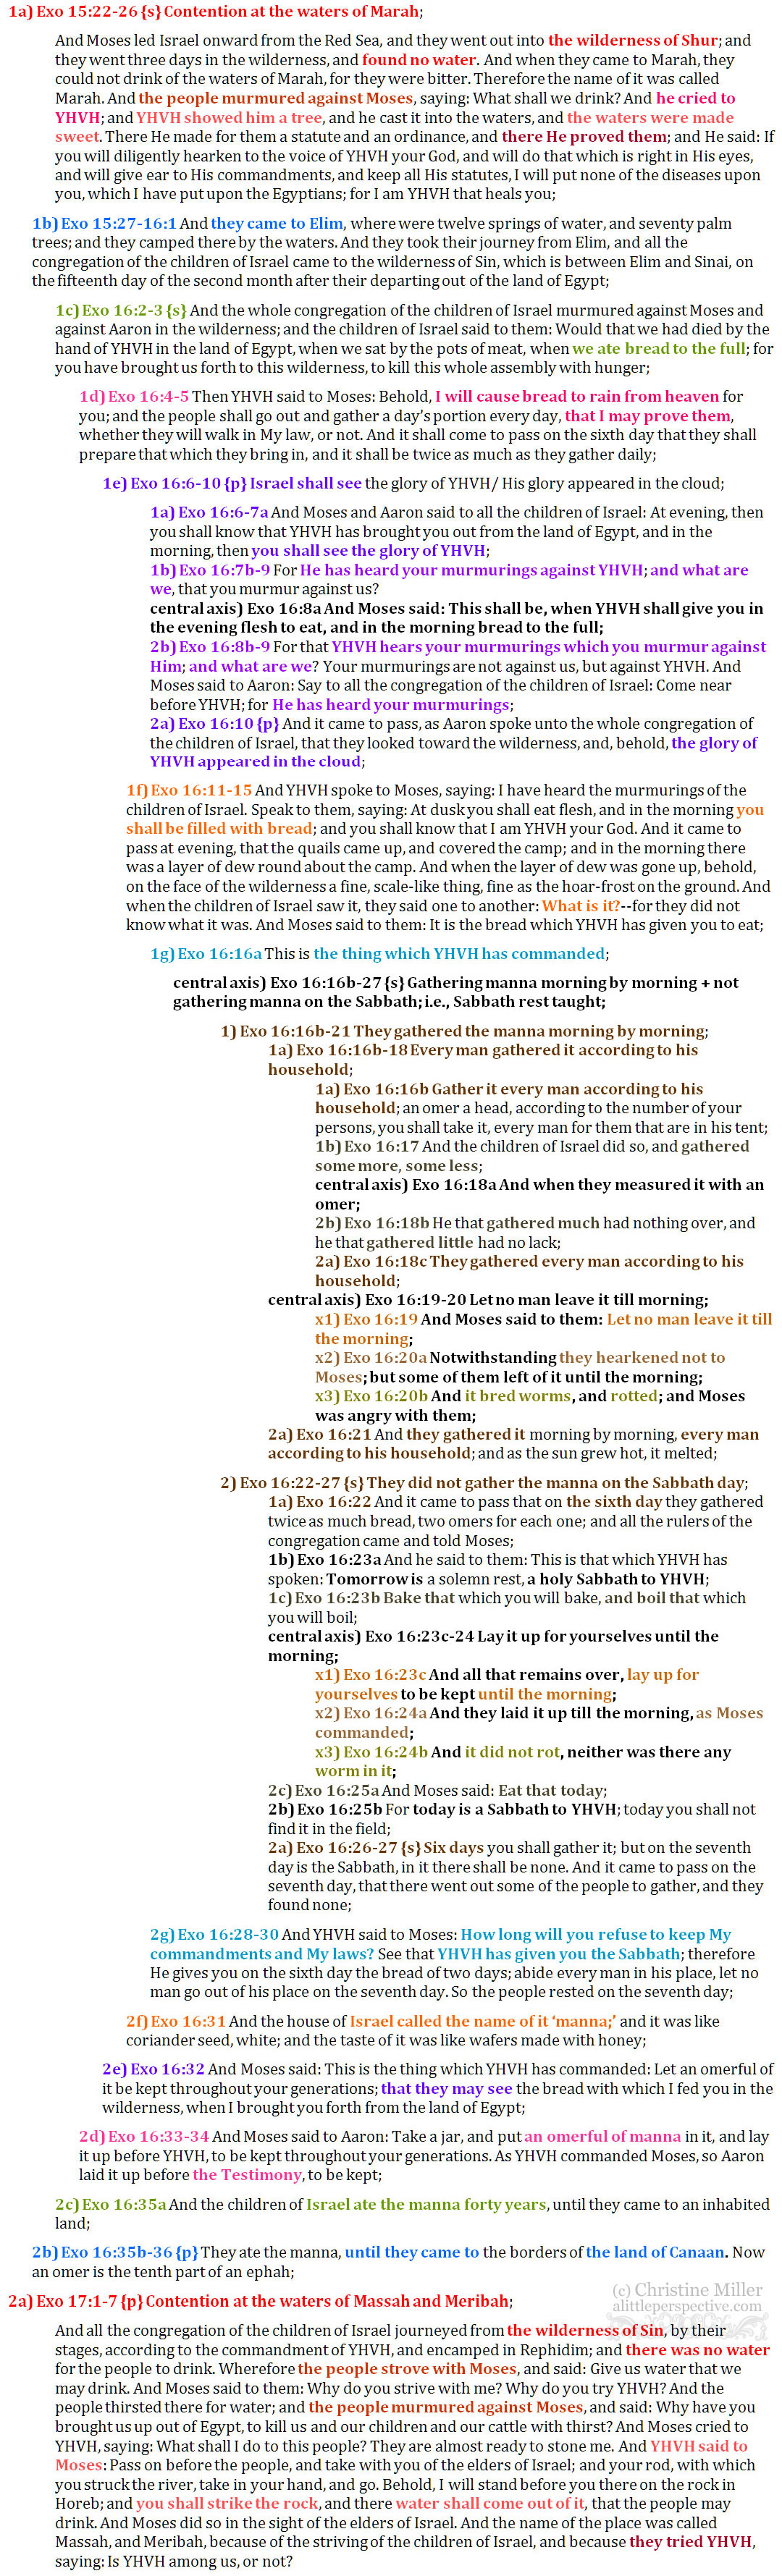 Exo 15:22-17:7 expanded chiasm | christine's bible study at alittleperspective.com